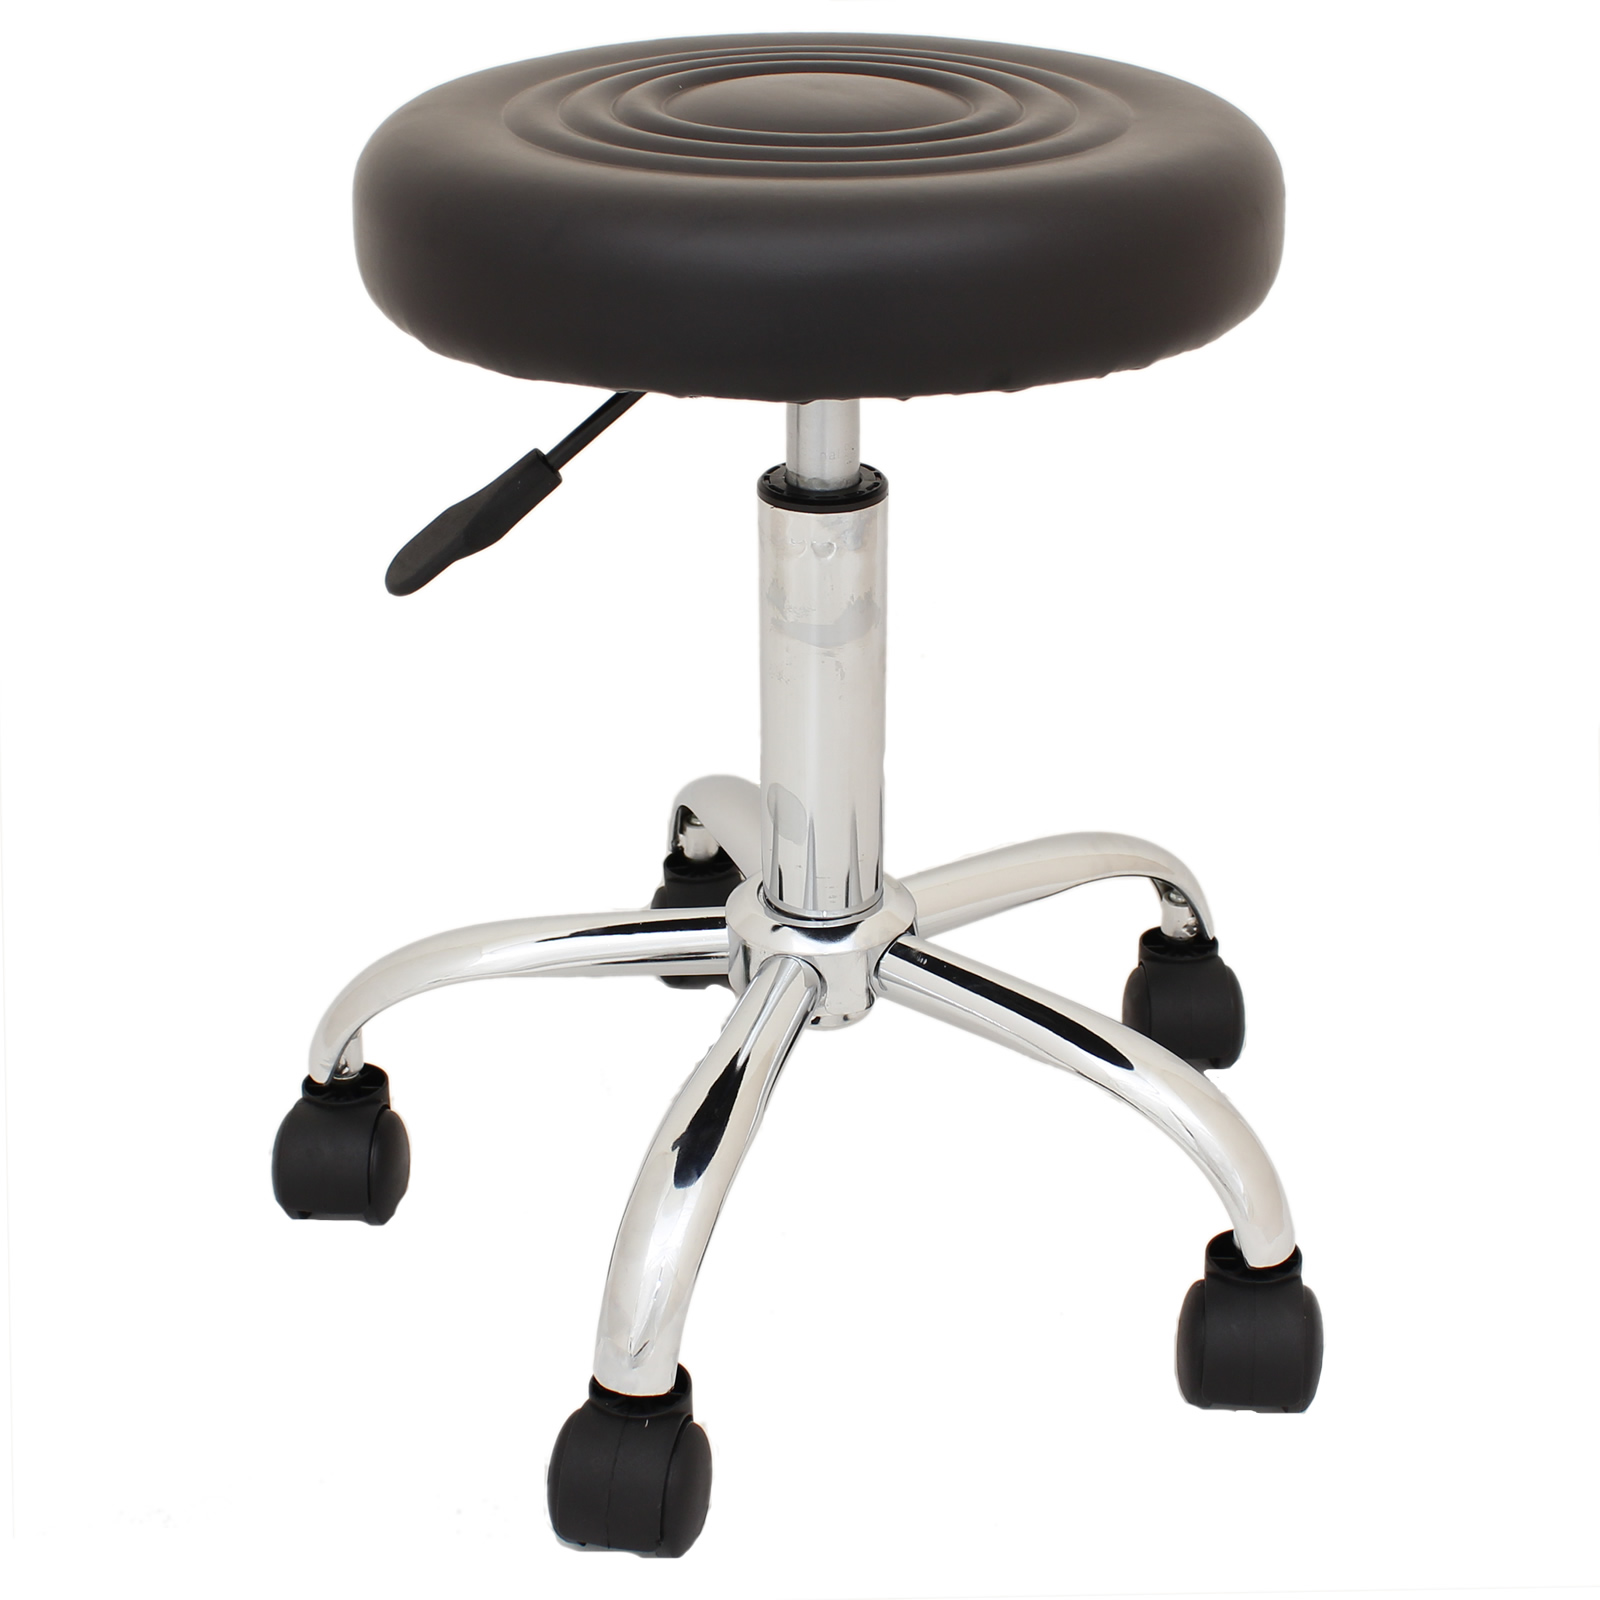 Adjustable Round Swivel Chair Stool Seat For Beauty